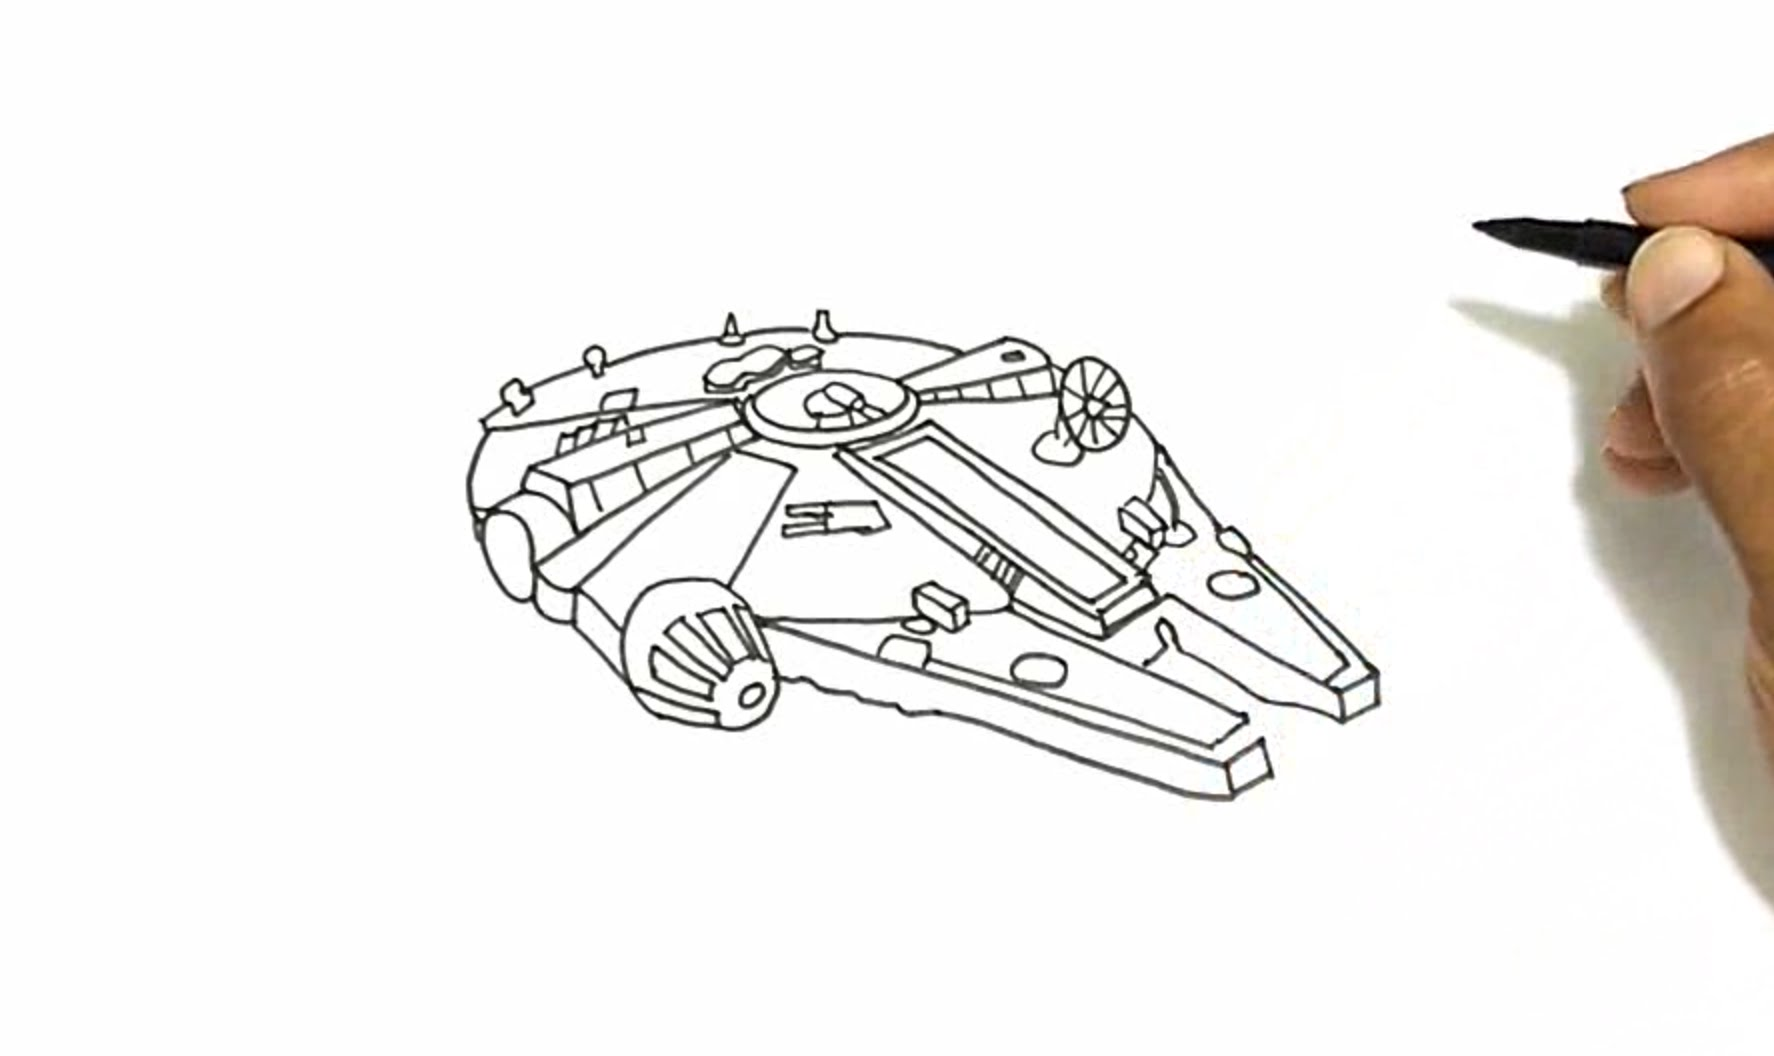 Drawn wars simple Millennium Falcon to from Falcon